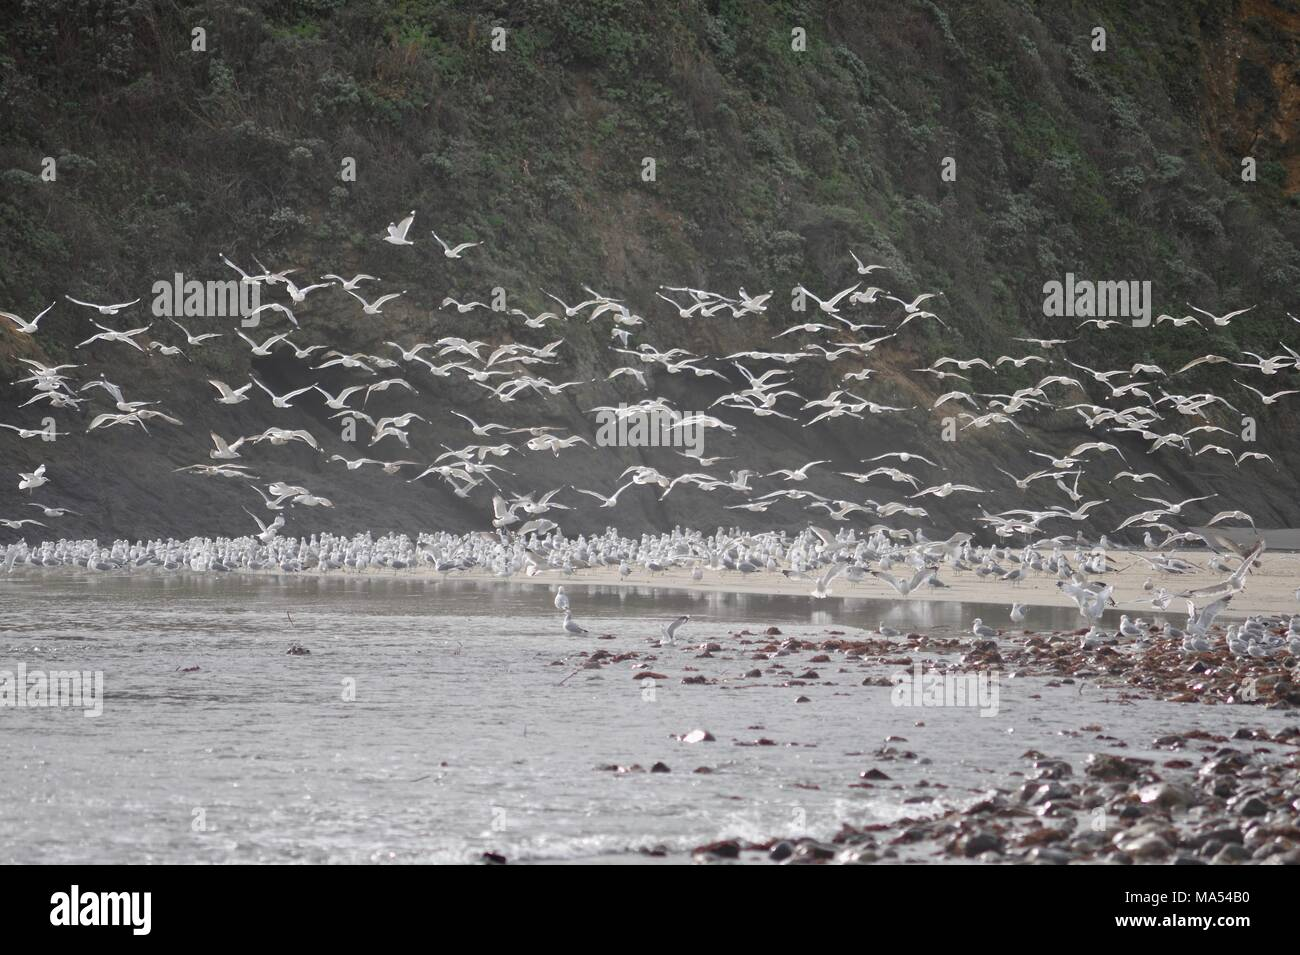 Flock of seagulls suddenly taking off along rugged coastline beach landscape with Pacific Ocean, waves and rocky cliffs in Big Sur, California, USA. - Stock Image